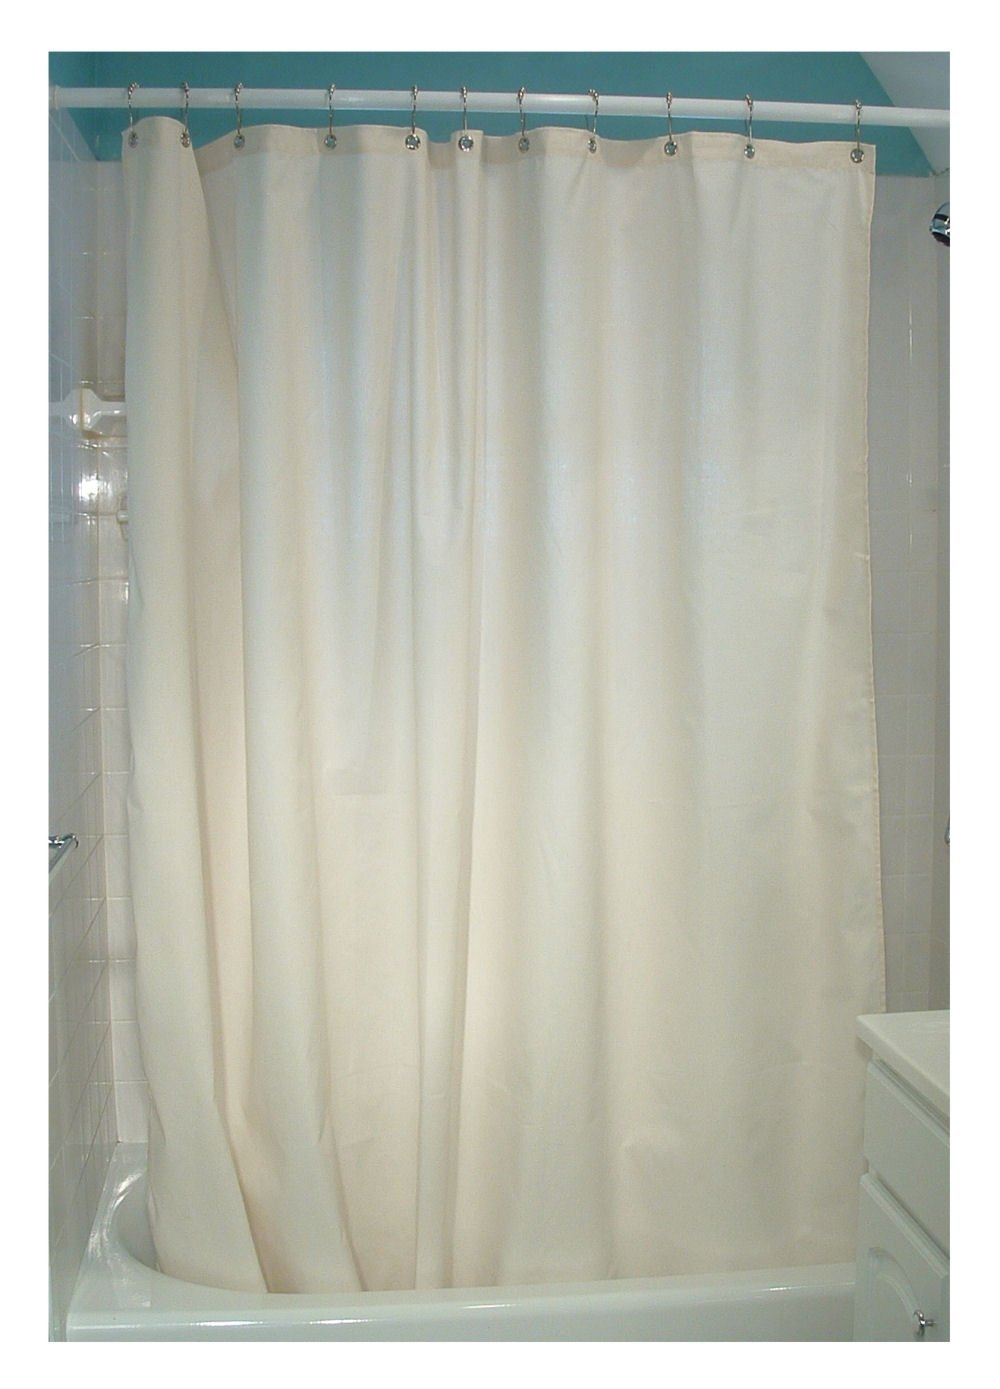 Earth Friendly Shower Curtains Organic Cotton Shower Curtains For Natural Fiber Curtains (Image 8 of 15)